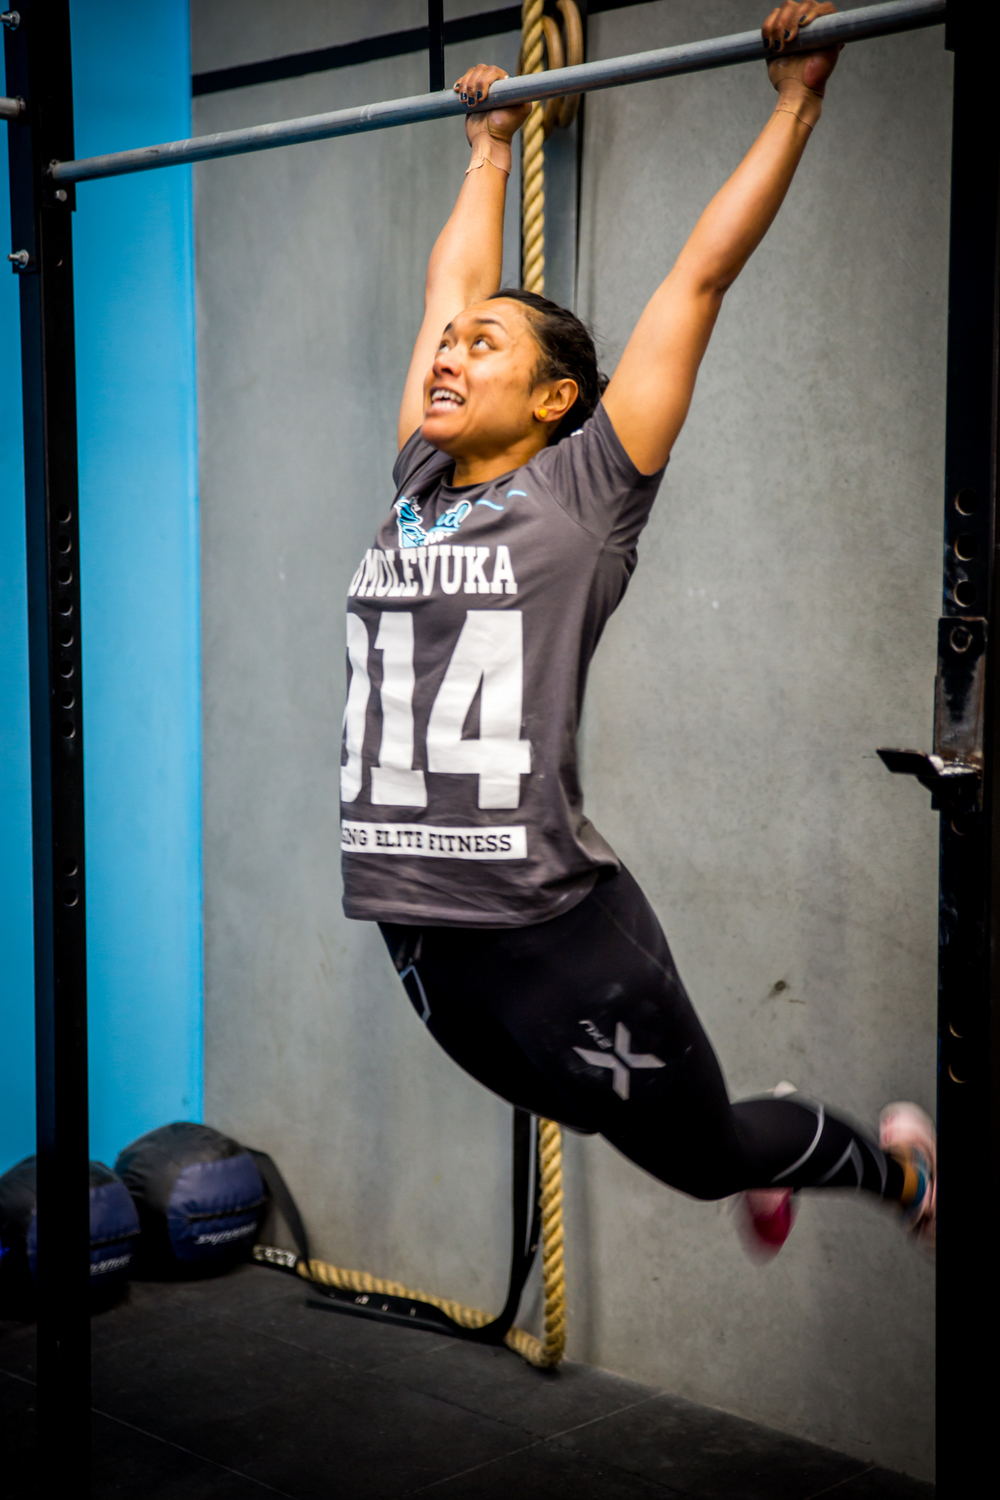 Above: Illy during THE 2014 MORELAND GAMES; OPEN WOD#1!